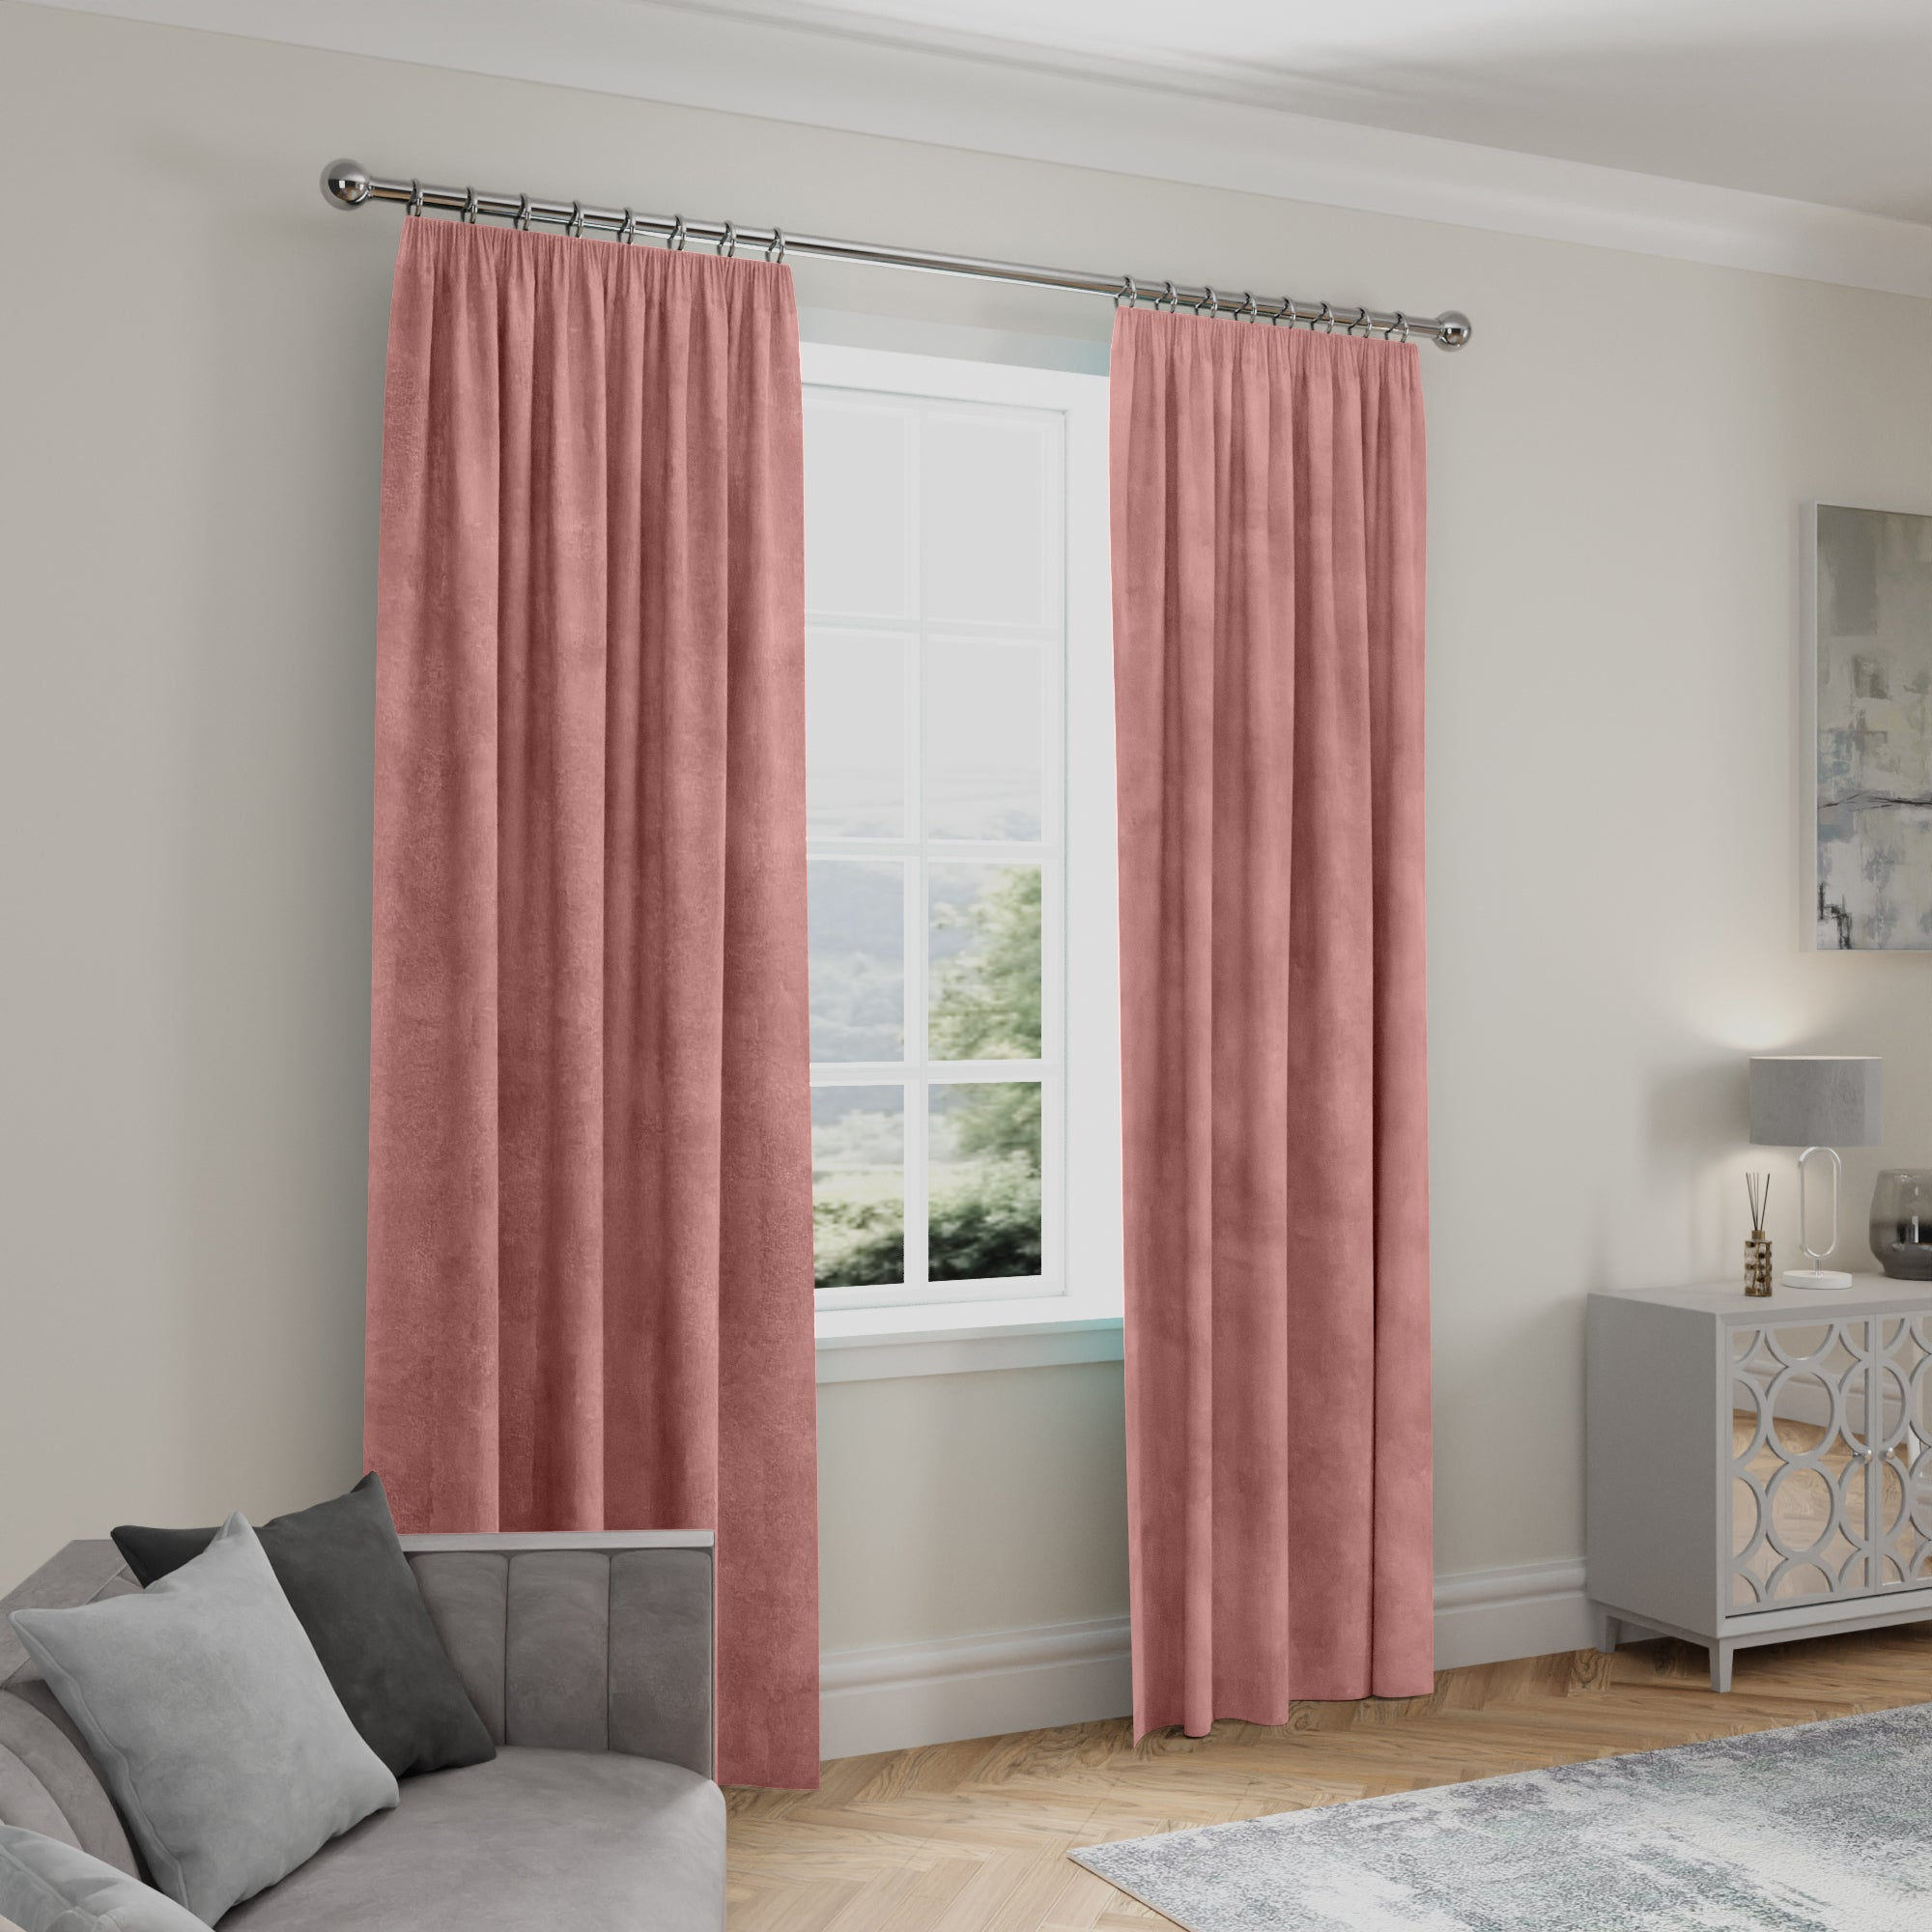 Click to view product details and reviews for Stellar Thermal Rose Pencil Pleat Curtains Rose Pink.